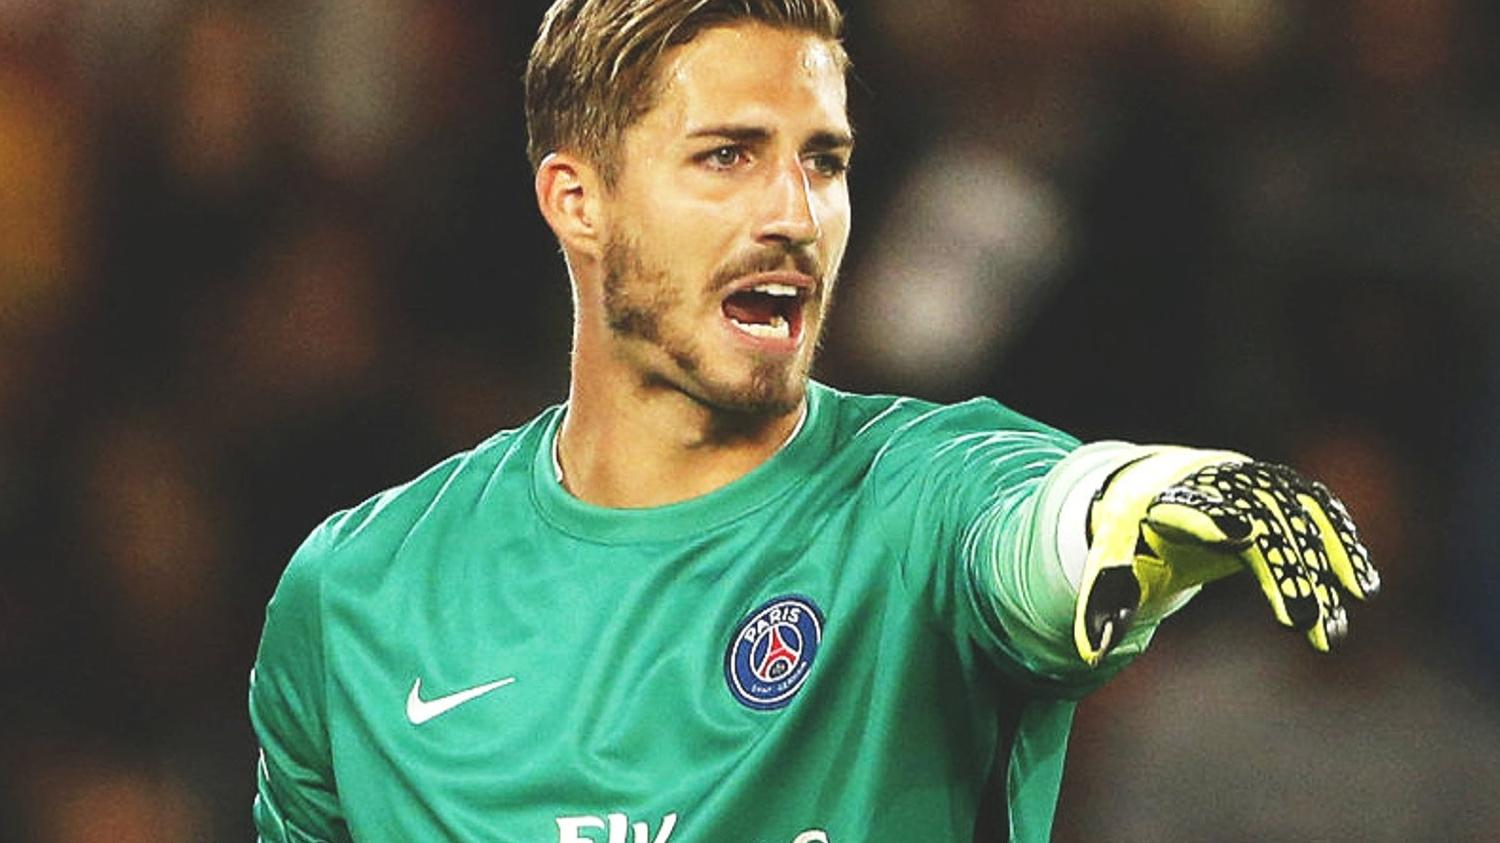 9.Kevin Trapp